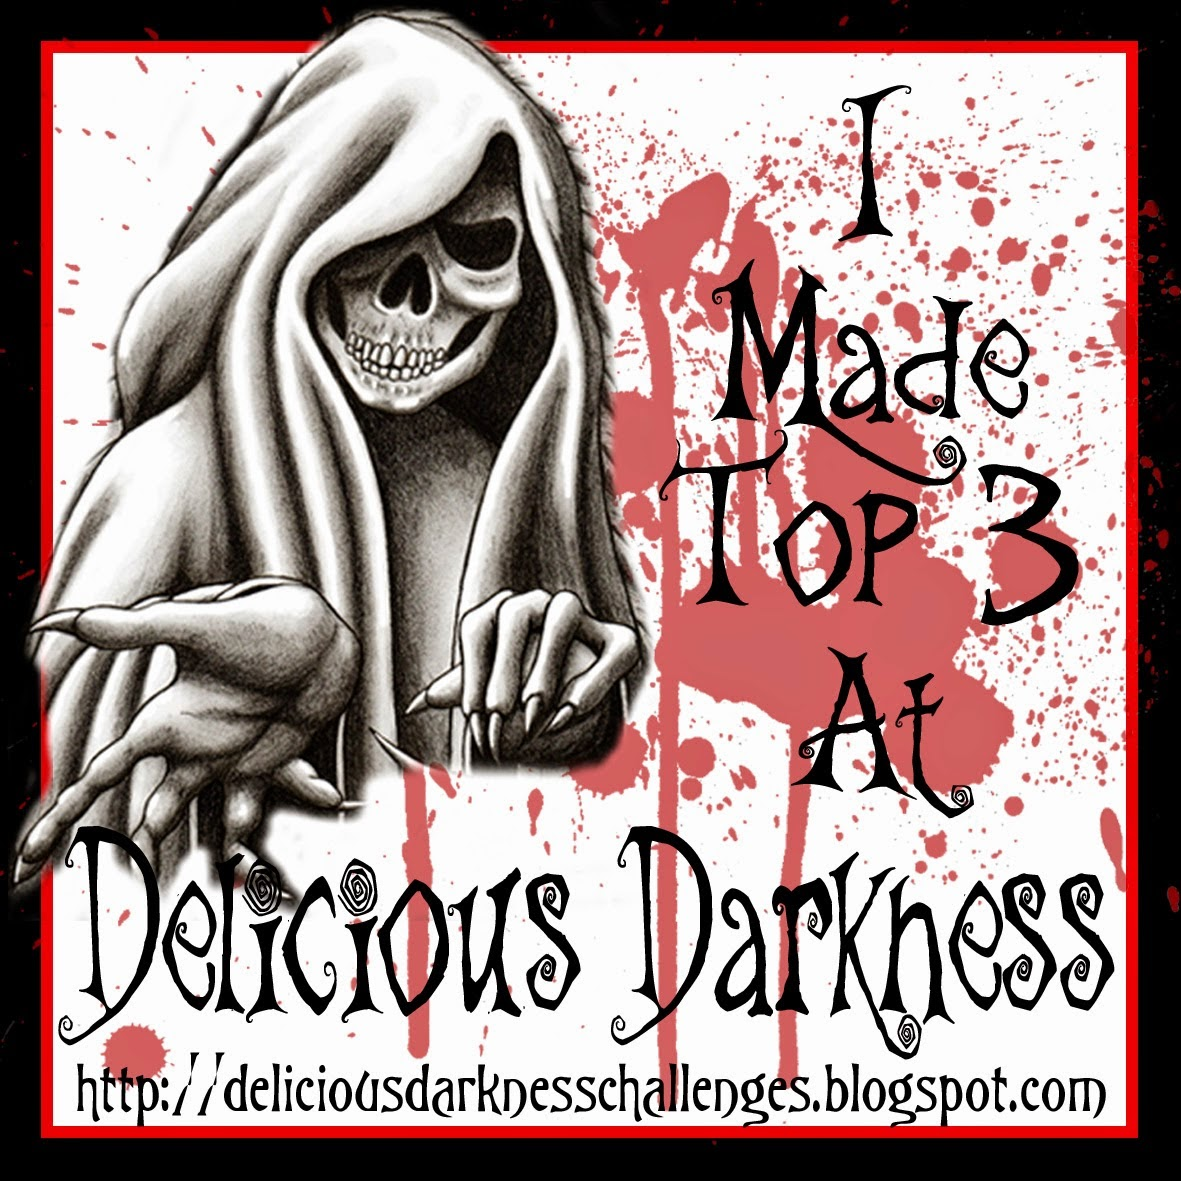 Delicious Darkness Top 3